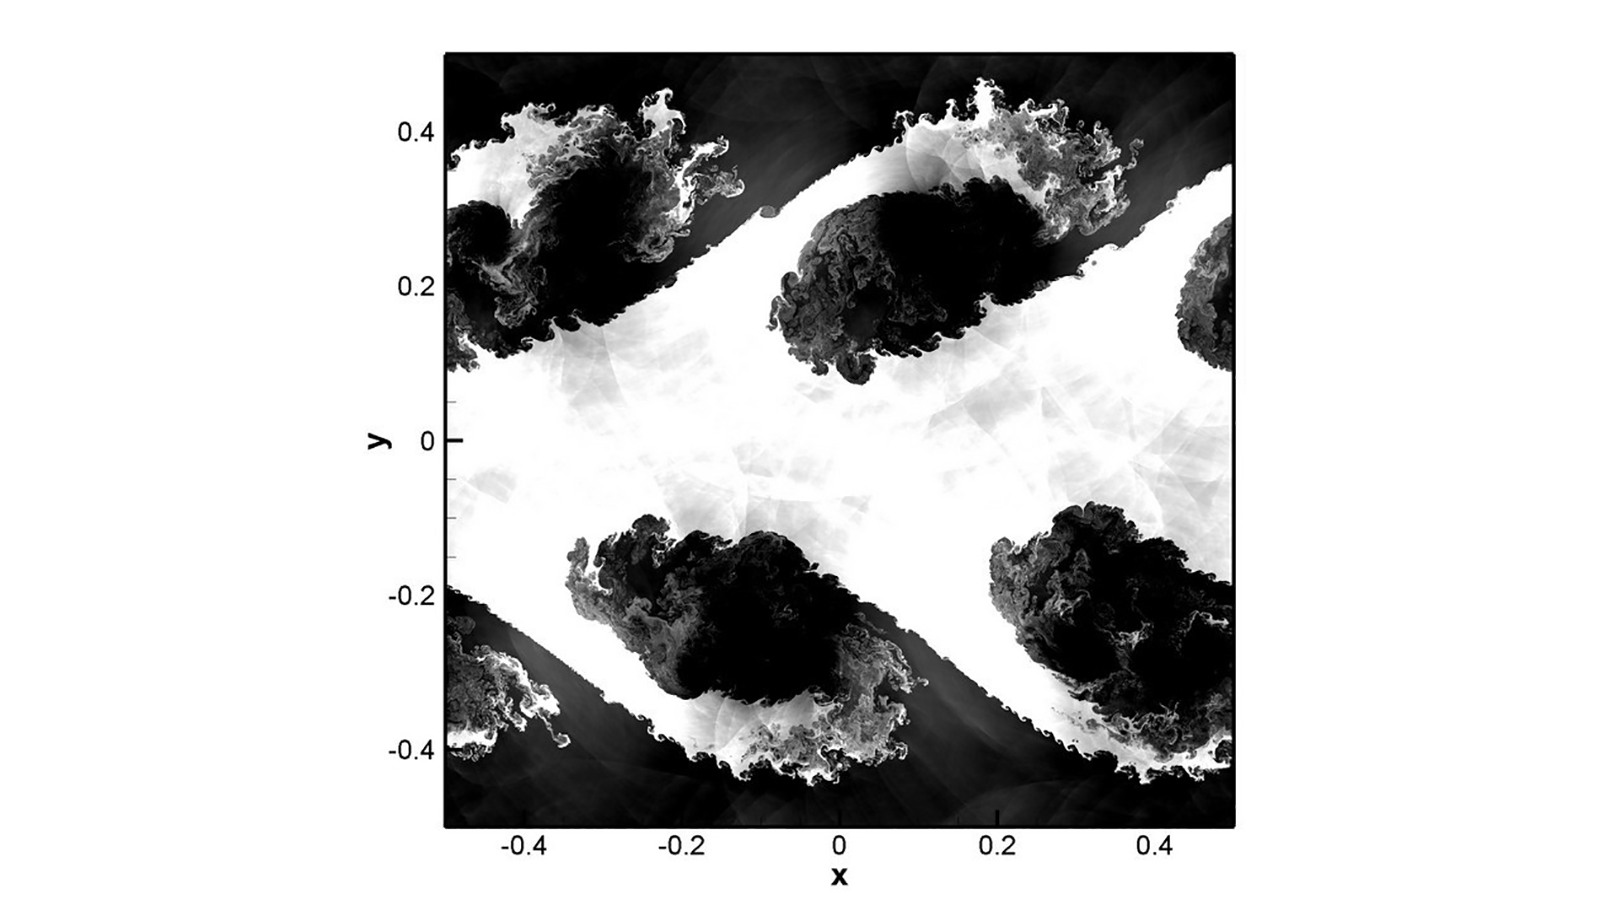 This image shows one snapshot of the time-varying density field for a two-dimensional compressible turbulence test case.